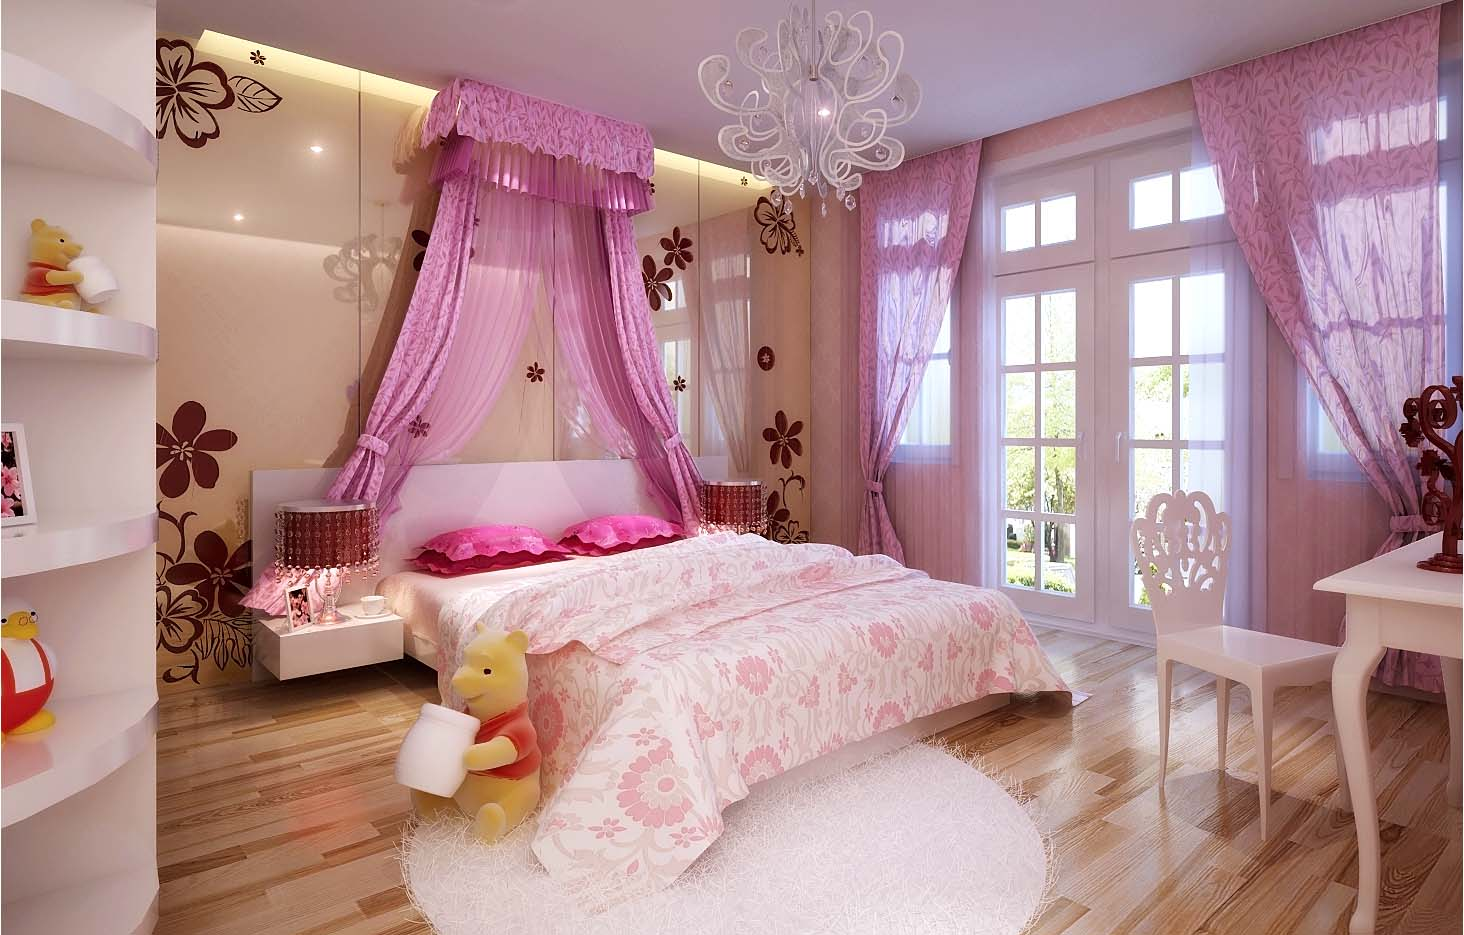 Luxurious Girls Bedroom With Big Bed Full... 3D Model .max ... on New Model Bedroom Design  id=38773